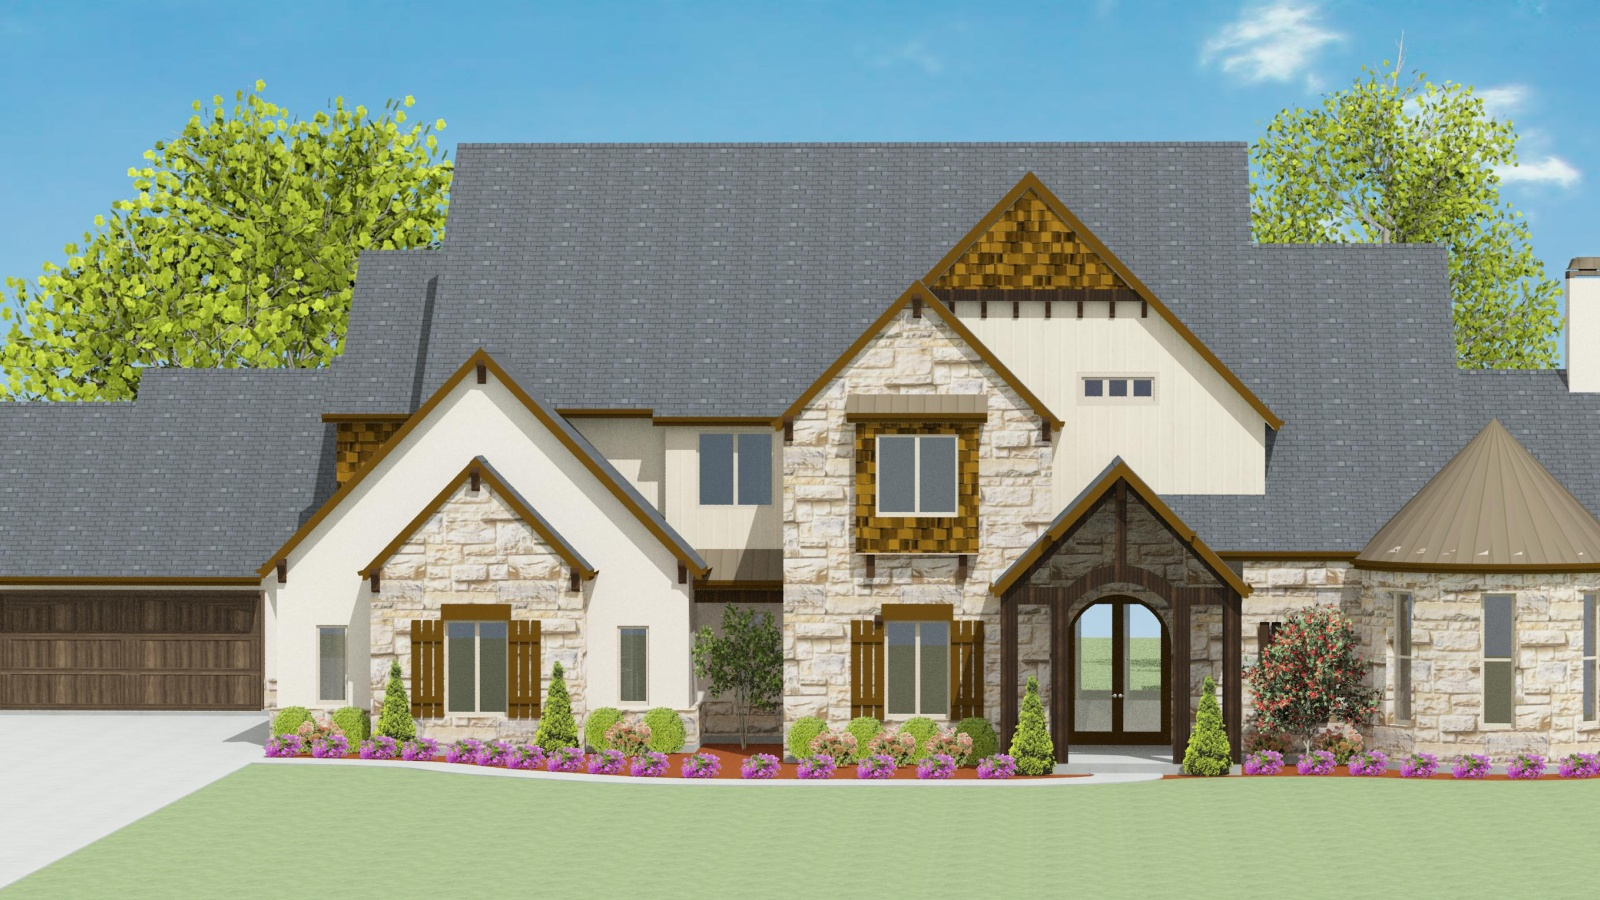 5 Bedrooms Bedrooms, ,5 BathroomsBathrooms,Custom Home,Home Plans,1048